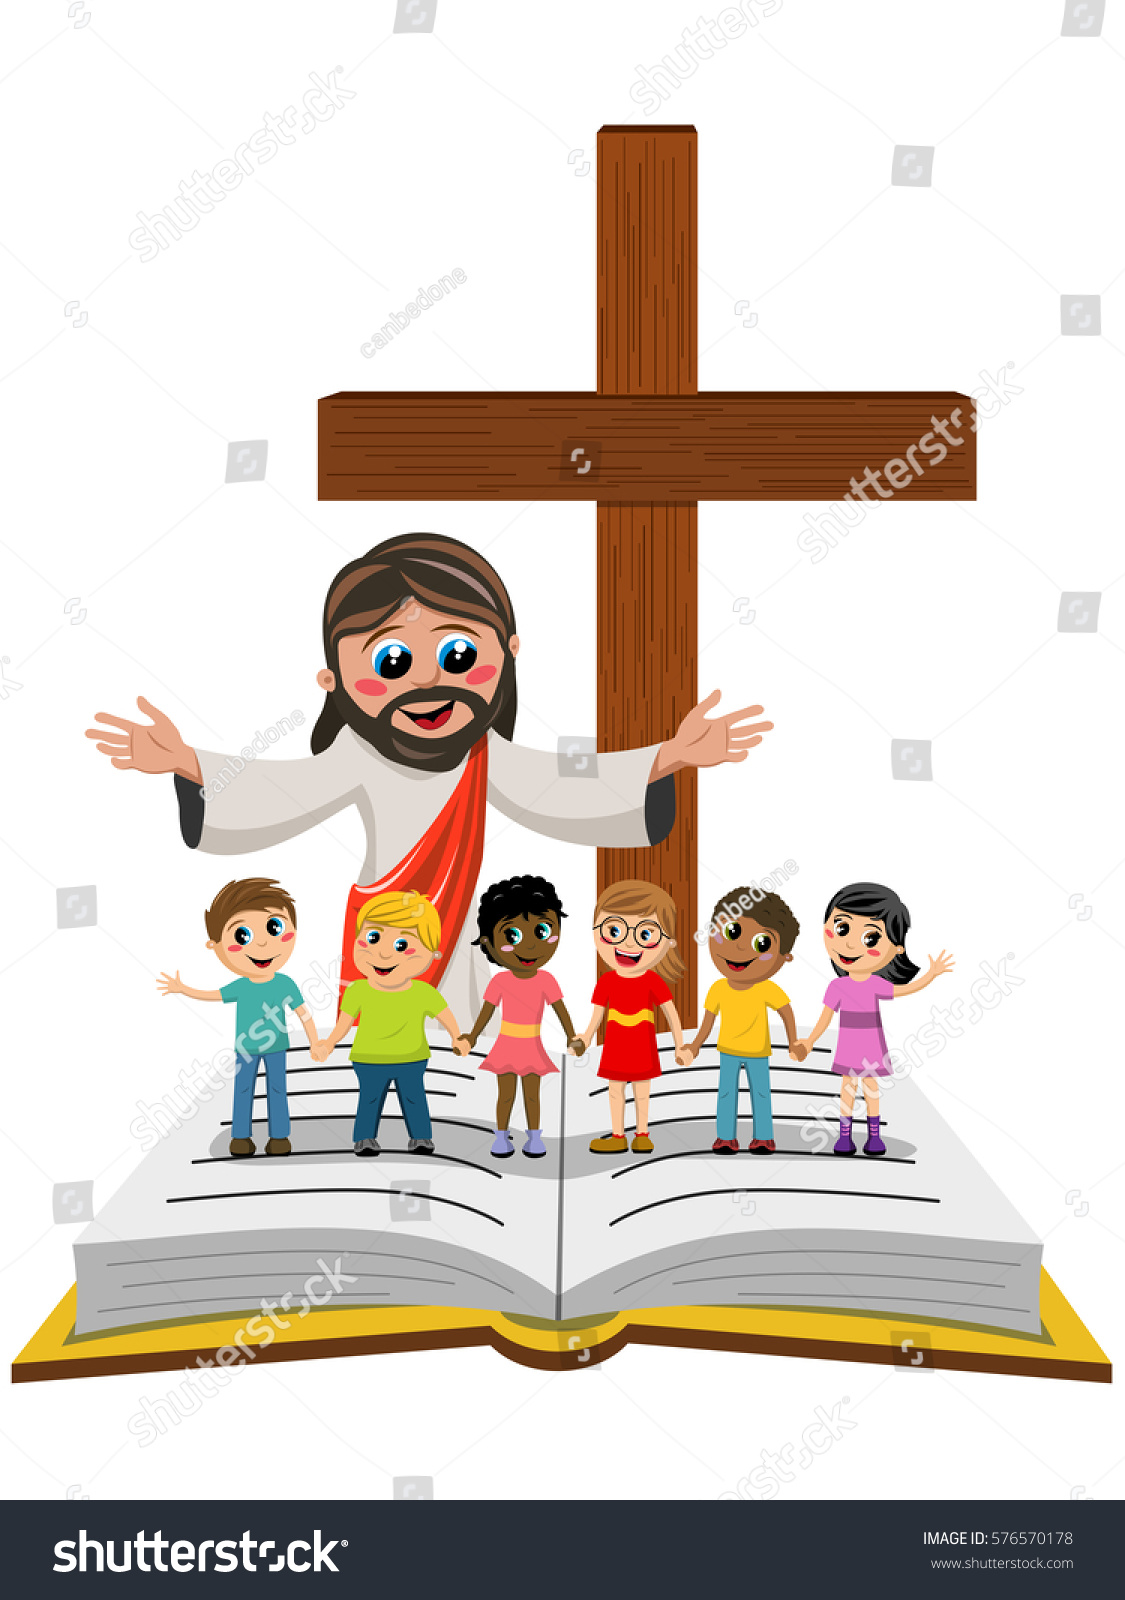 cartoon open arms jesus front kids stock vector 576570178